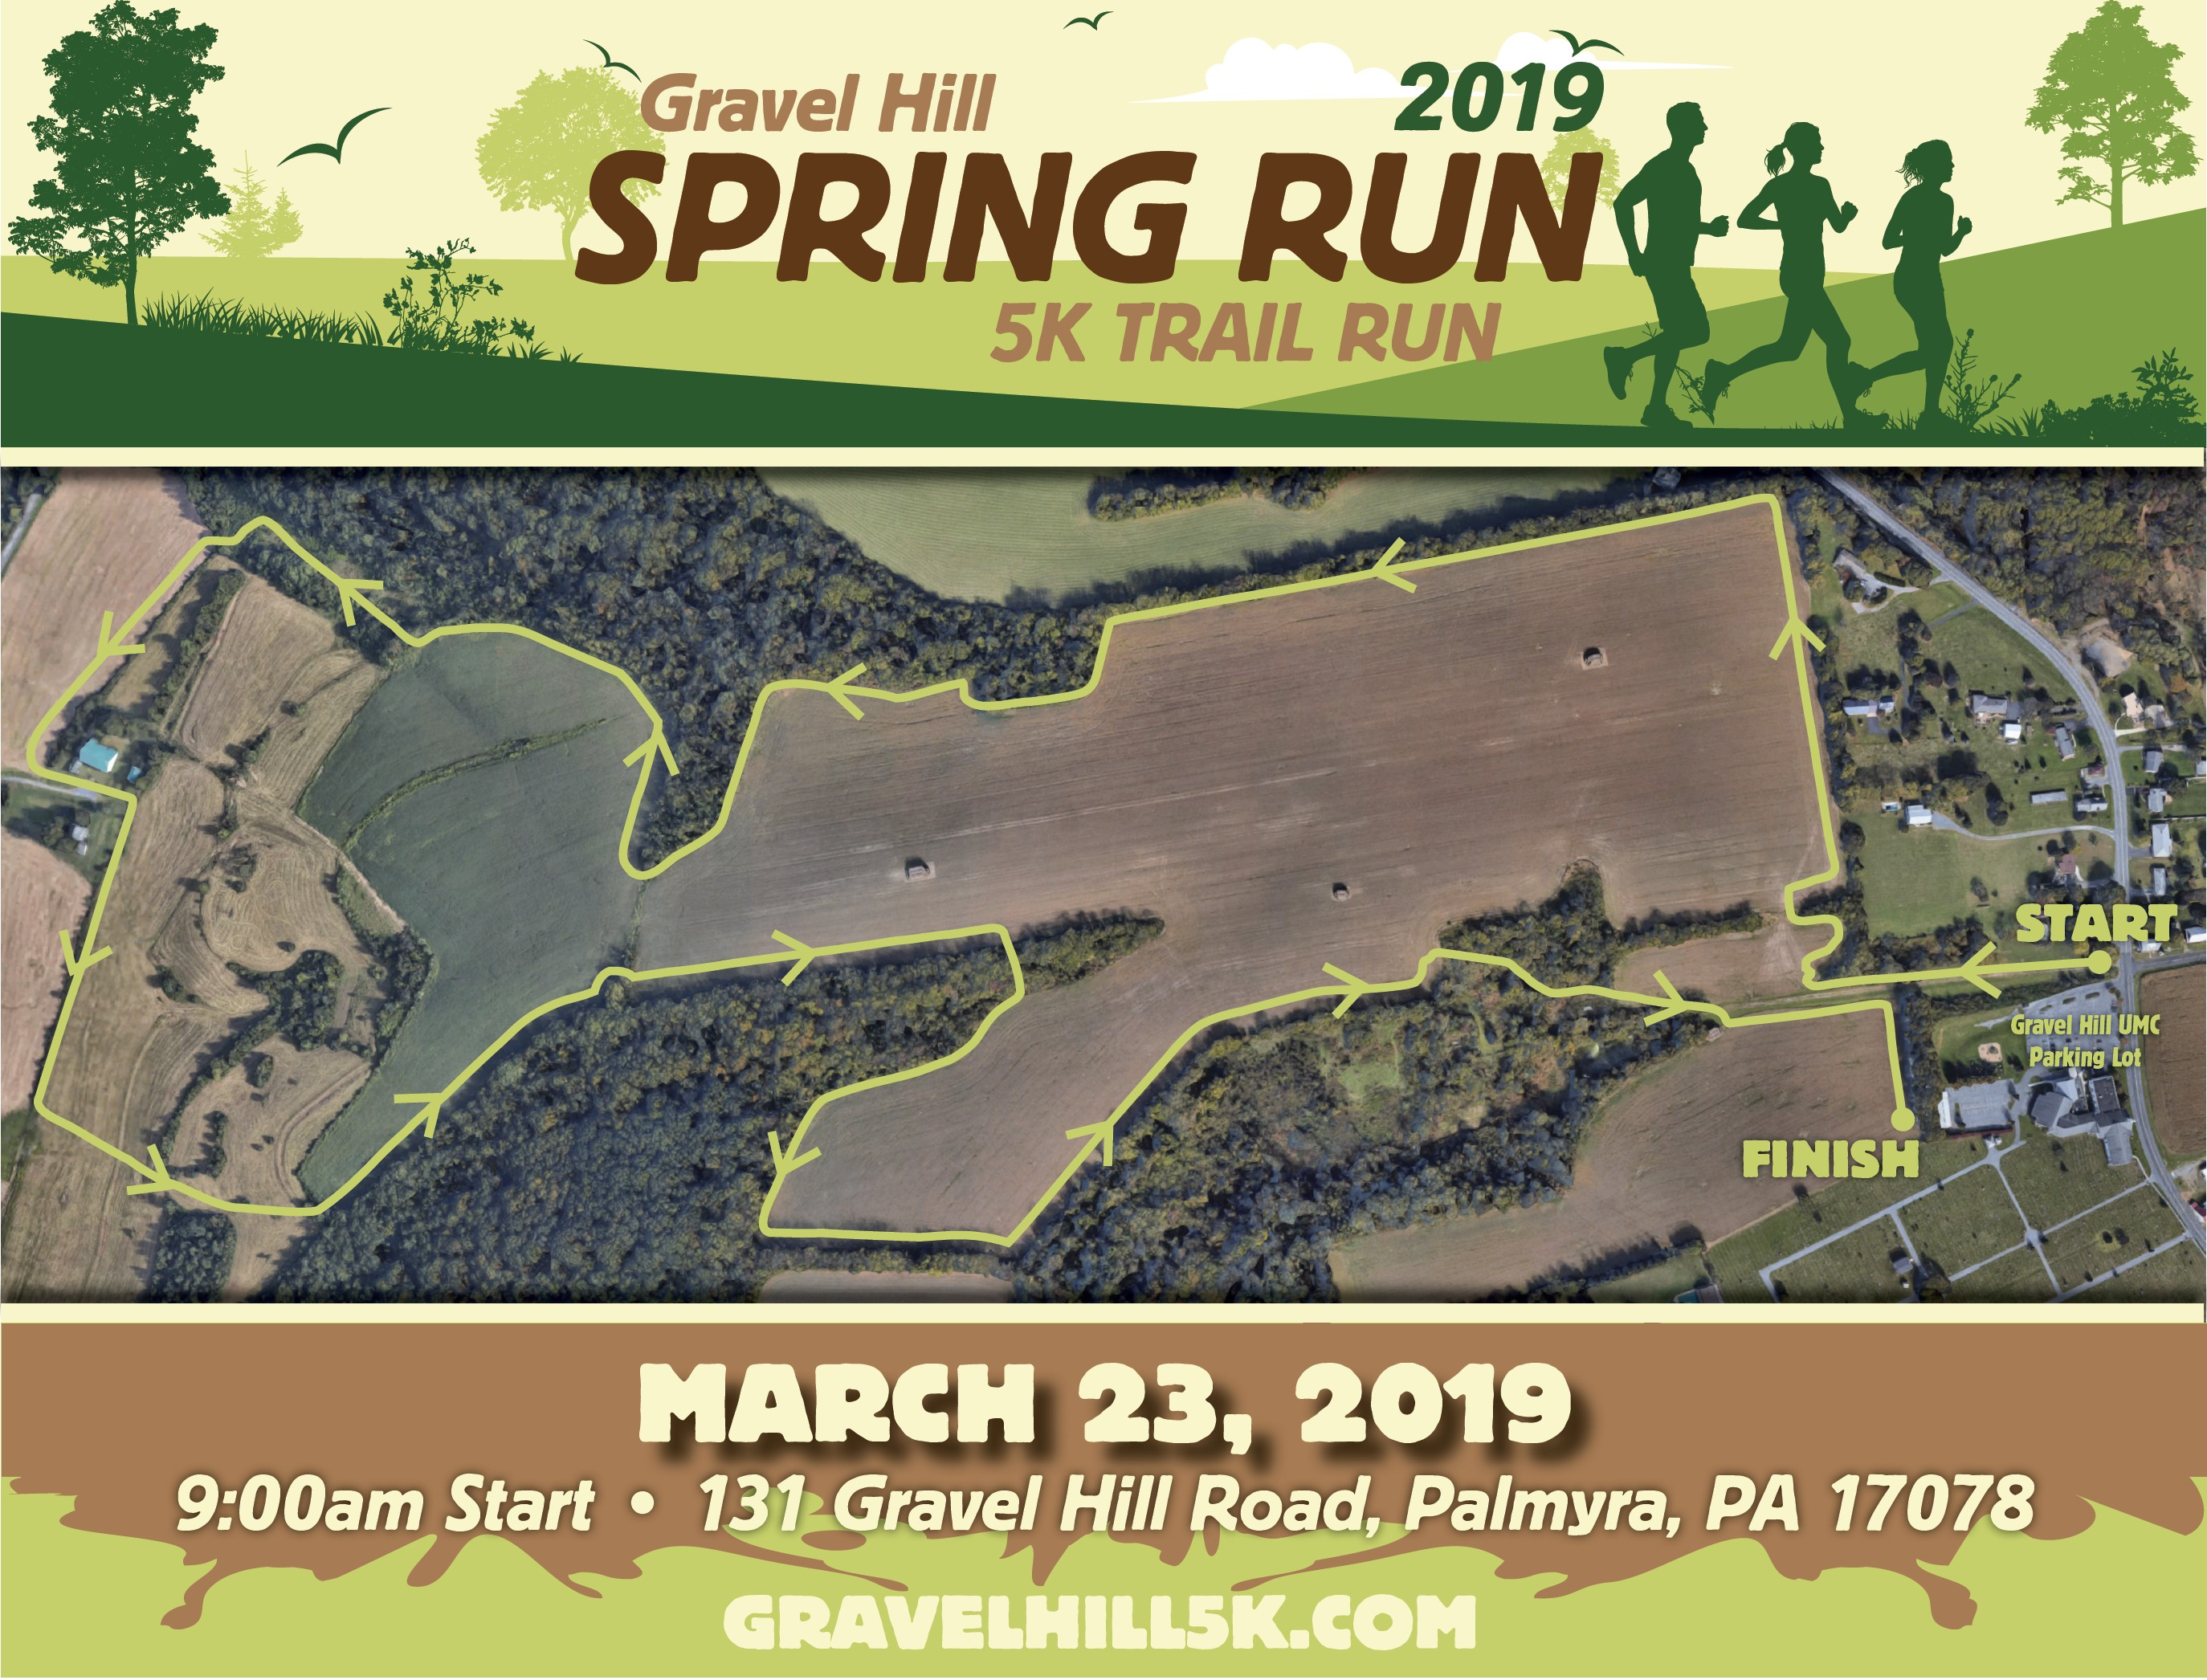 March 2019 Calendar Landscape Más Reciente Gravel Hill Spring Run 5k Ghumc Of March 2019 Calendar Landscape Más Recientemente Liberado December 2019 Calendar